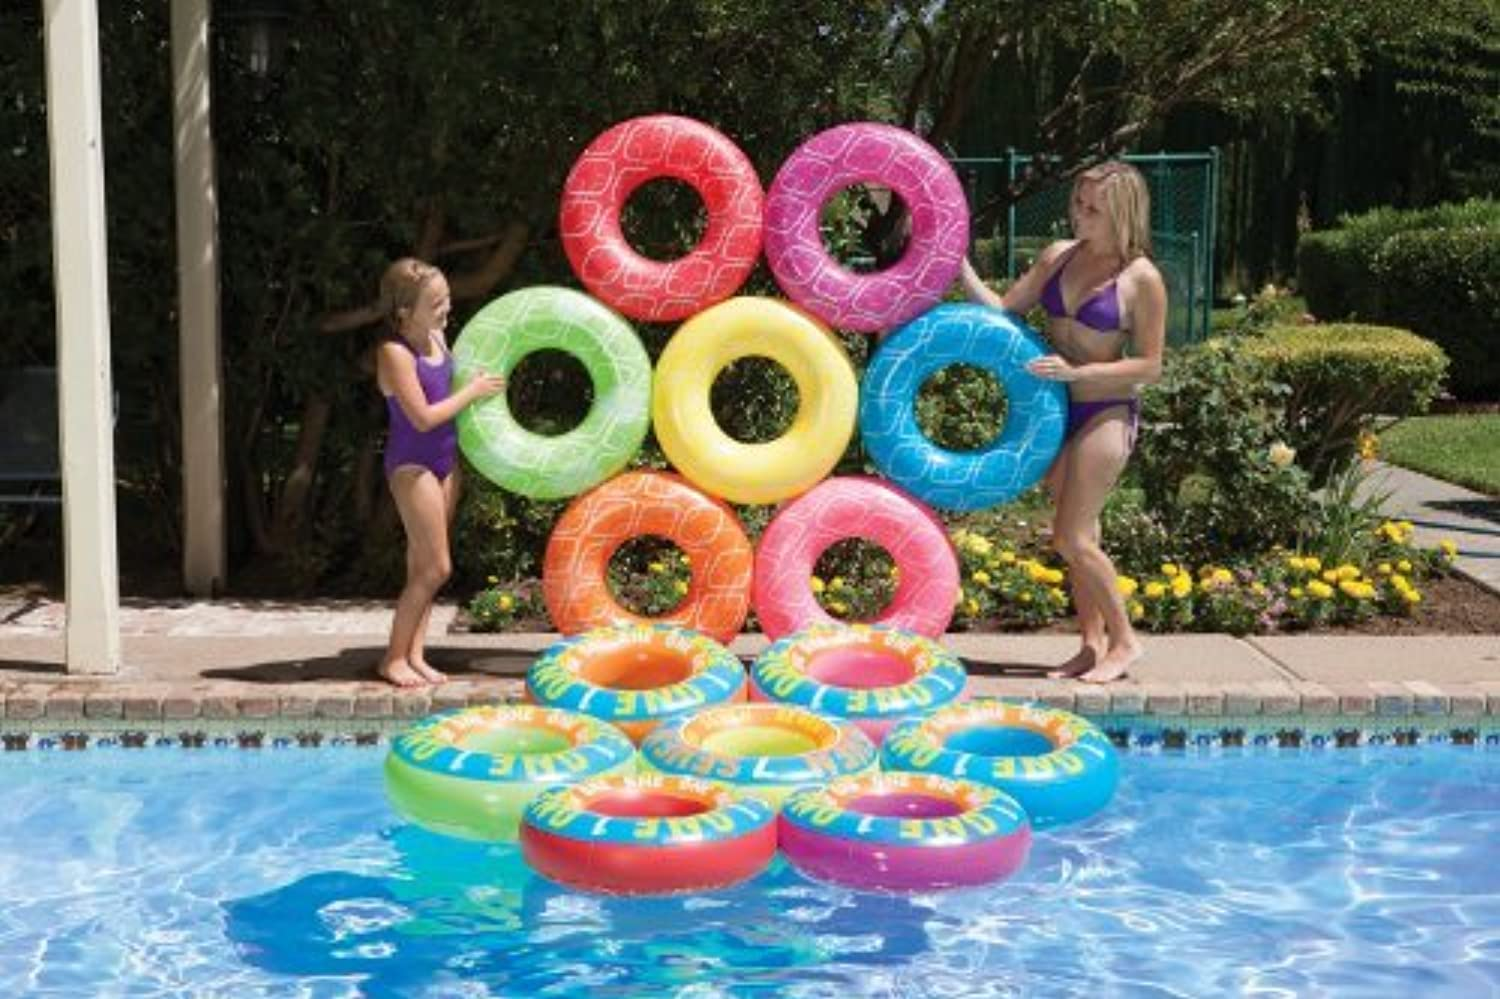 Poolmaster 83671 Ring-A-Ding-Ding Island   Lucky 7 Game by Poolmaster